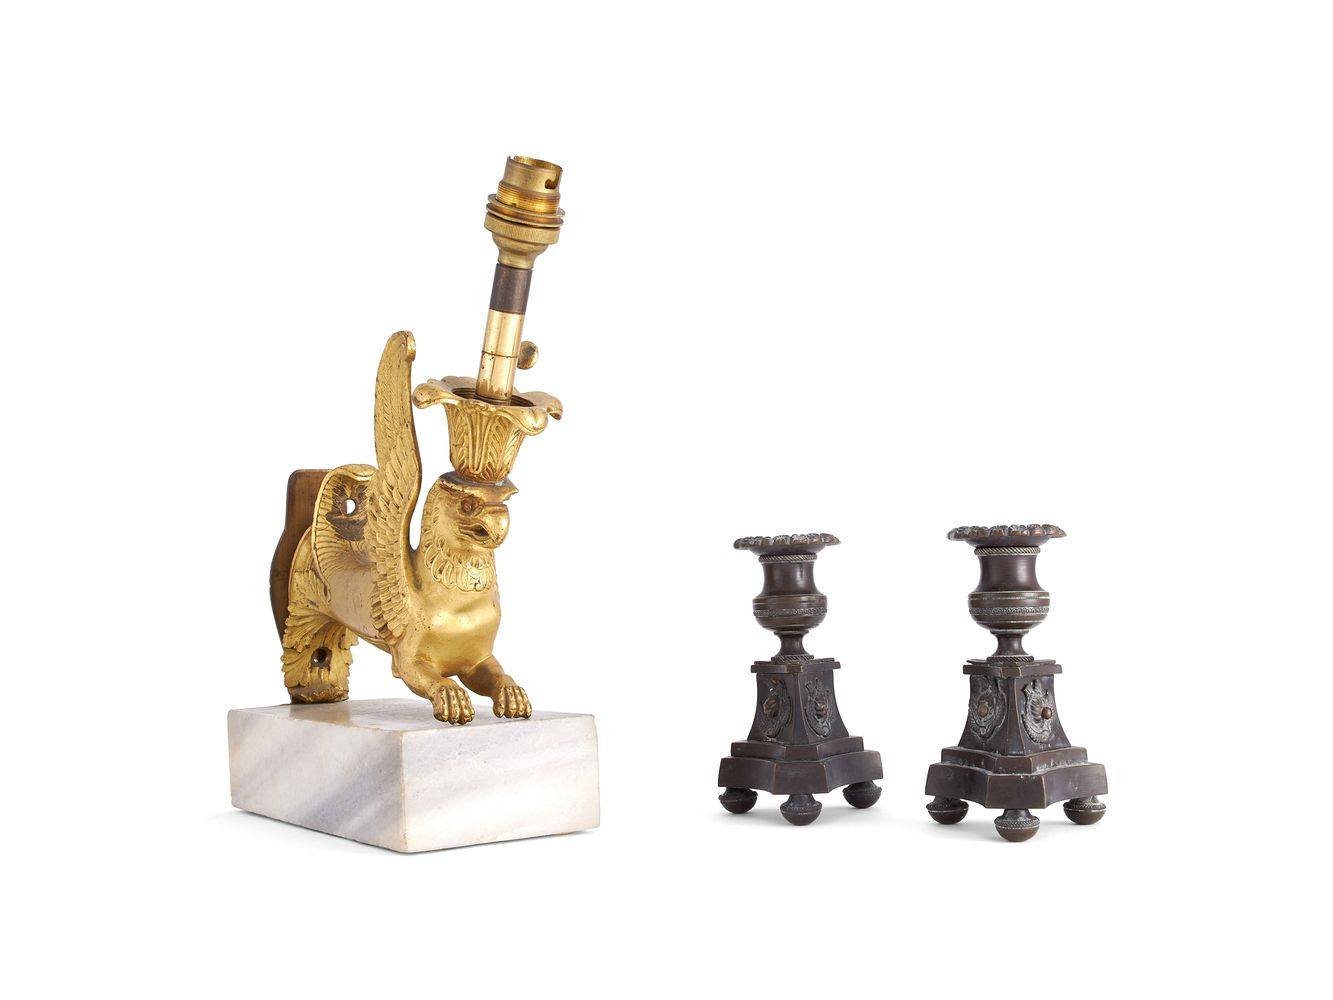 A pair of Empire patinated bronze candle holders, circa 1810, and a Regency gilt bronze mount refitt